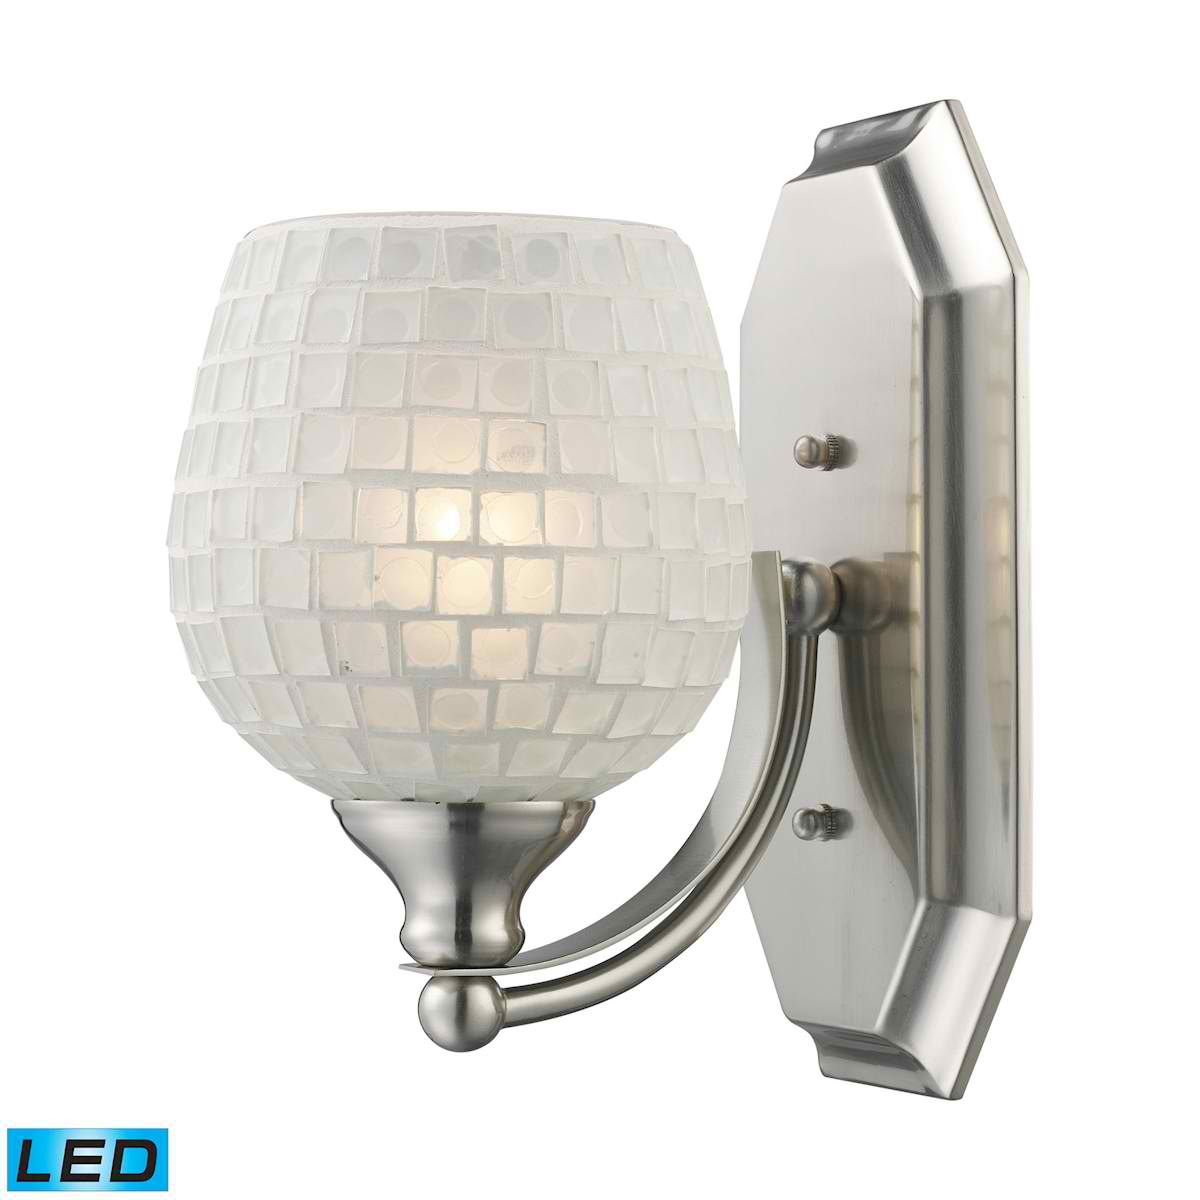 1 Light Vanity in Satin Nickel and White Mosaic Glass - LED Offering Up To 800 Lumens (60 Watt Equivalent)